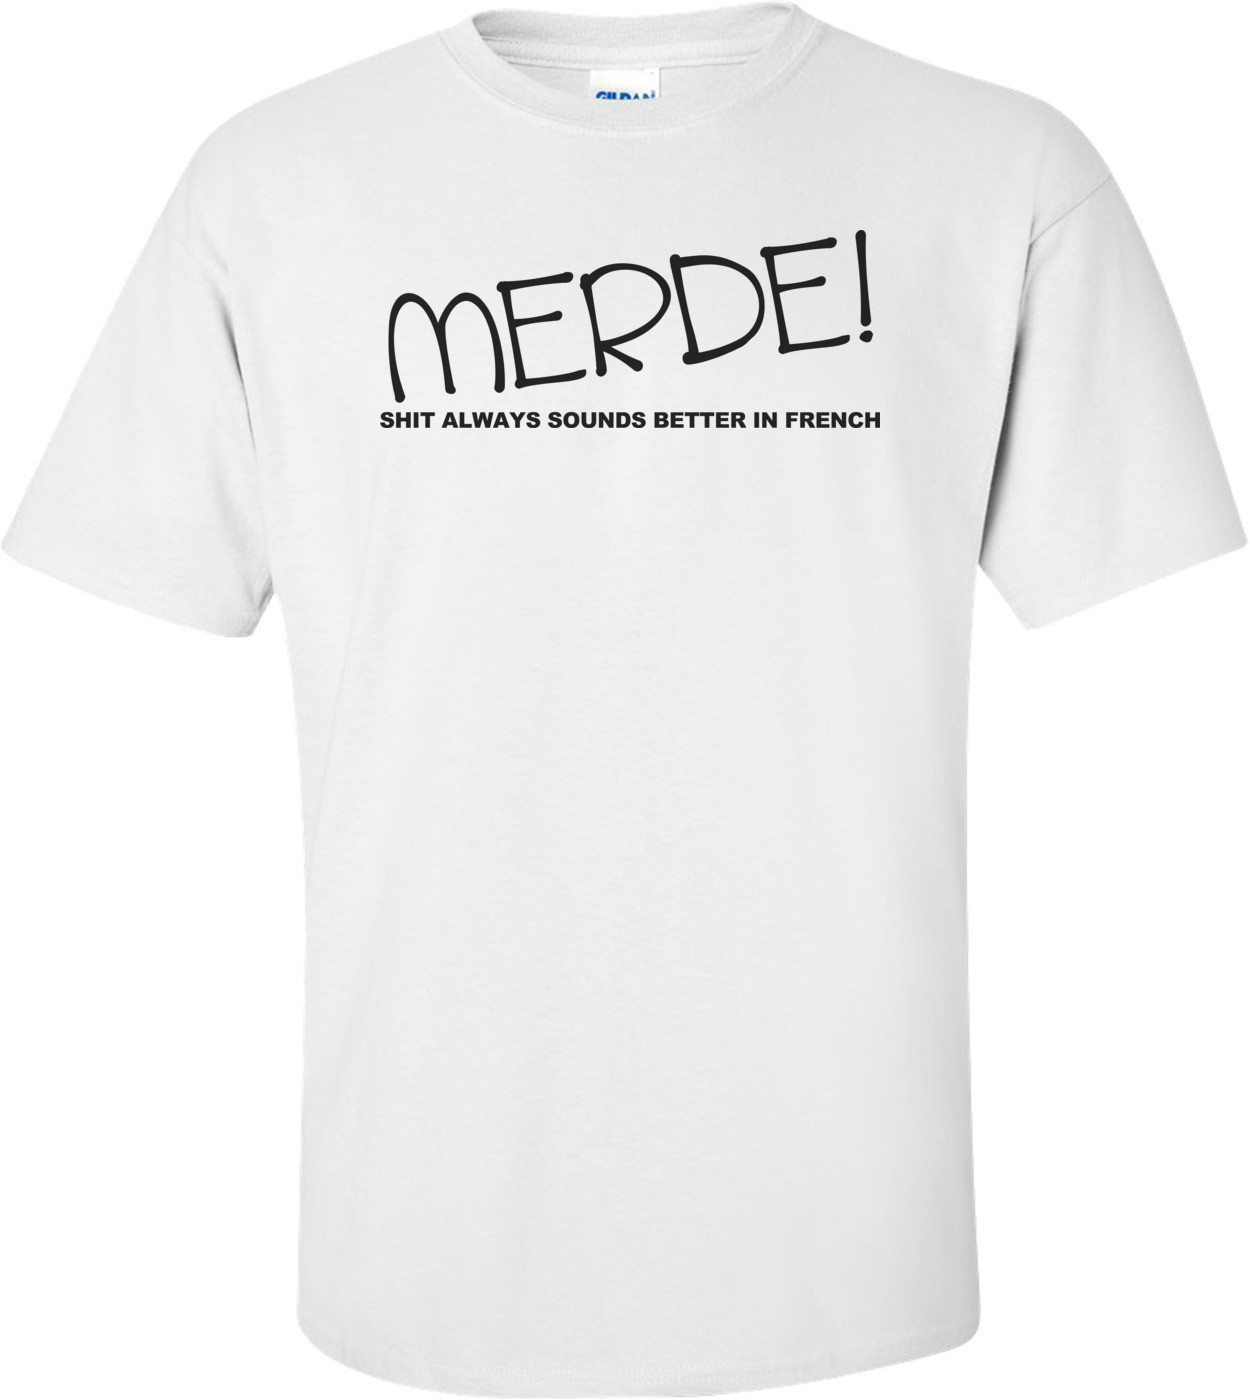 Merde! Shit Always Sounds Better In French Funny Shirt